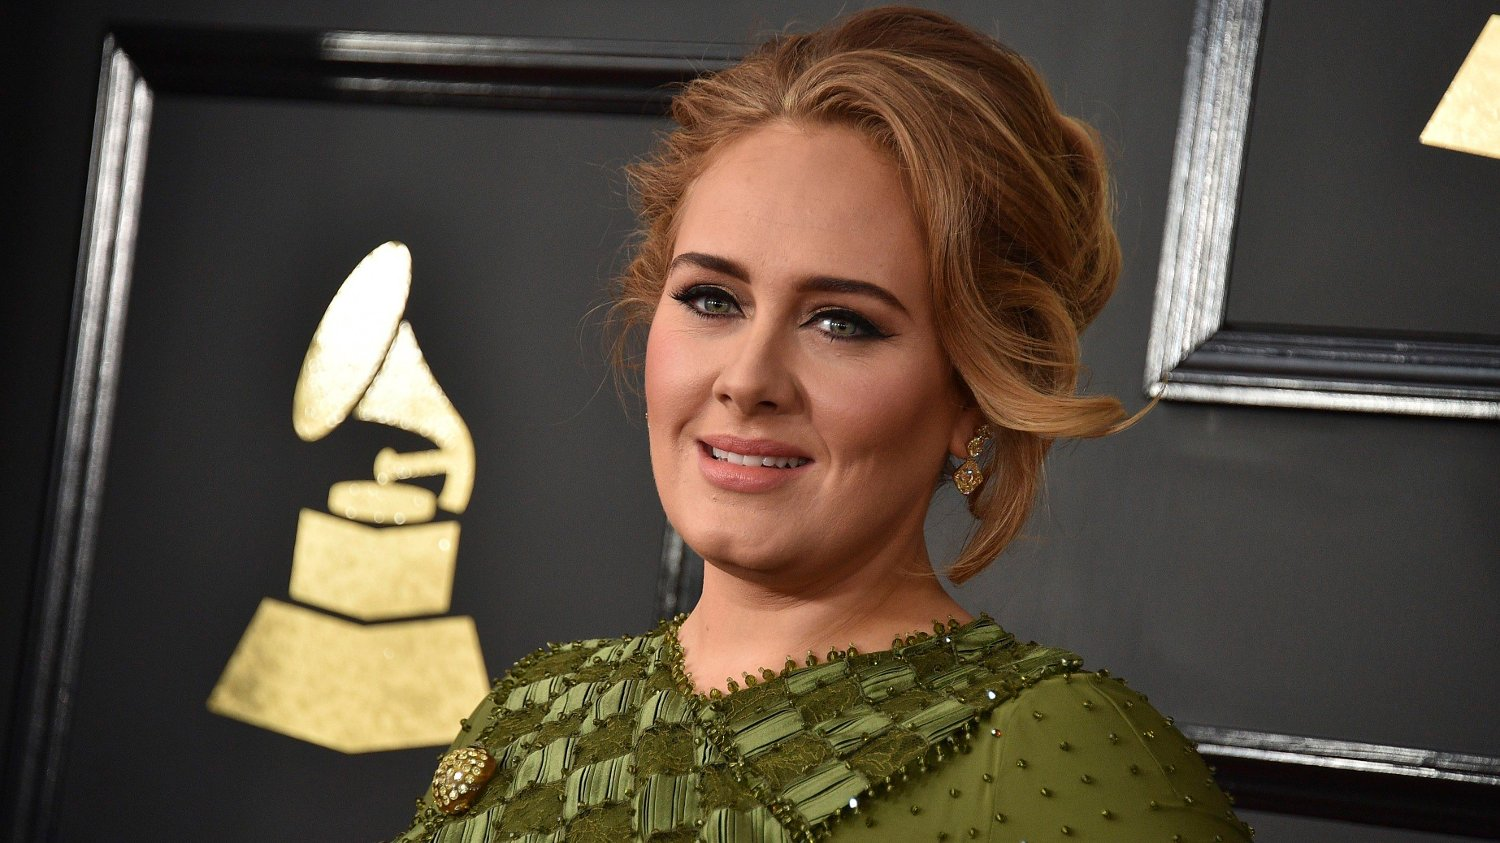 Adele FILE - In this Feb. 12, 2017, file photo, Adele arrives at the 59th annual Grammy Awards at the Staples Center in Los Angeles. Adele and her husband Simon Konecki have separated. The pop singer?Äôs representatives Benny Tarantini and Carl Fysh confirmed the news Friday, April 19, 2019 in a statement to The Associated Press. The statement read: ?ÄúAdele and her partner have separated. They are committed to raising their son together lovingly. As always they ask for privacy. There will be no further comment.?Äù